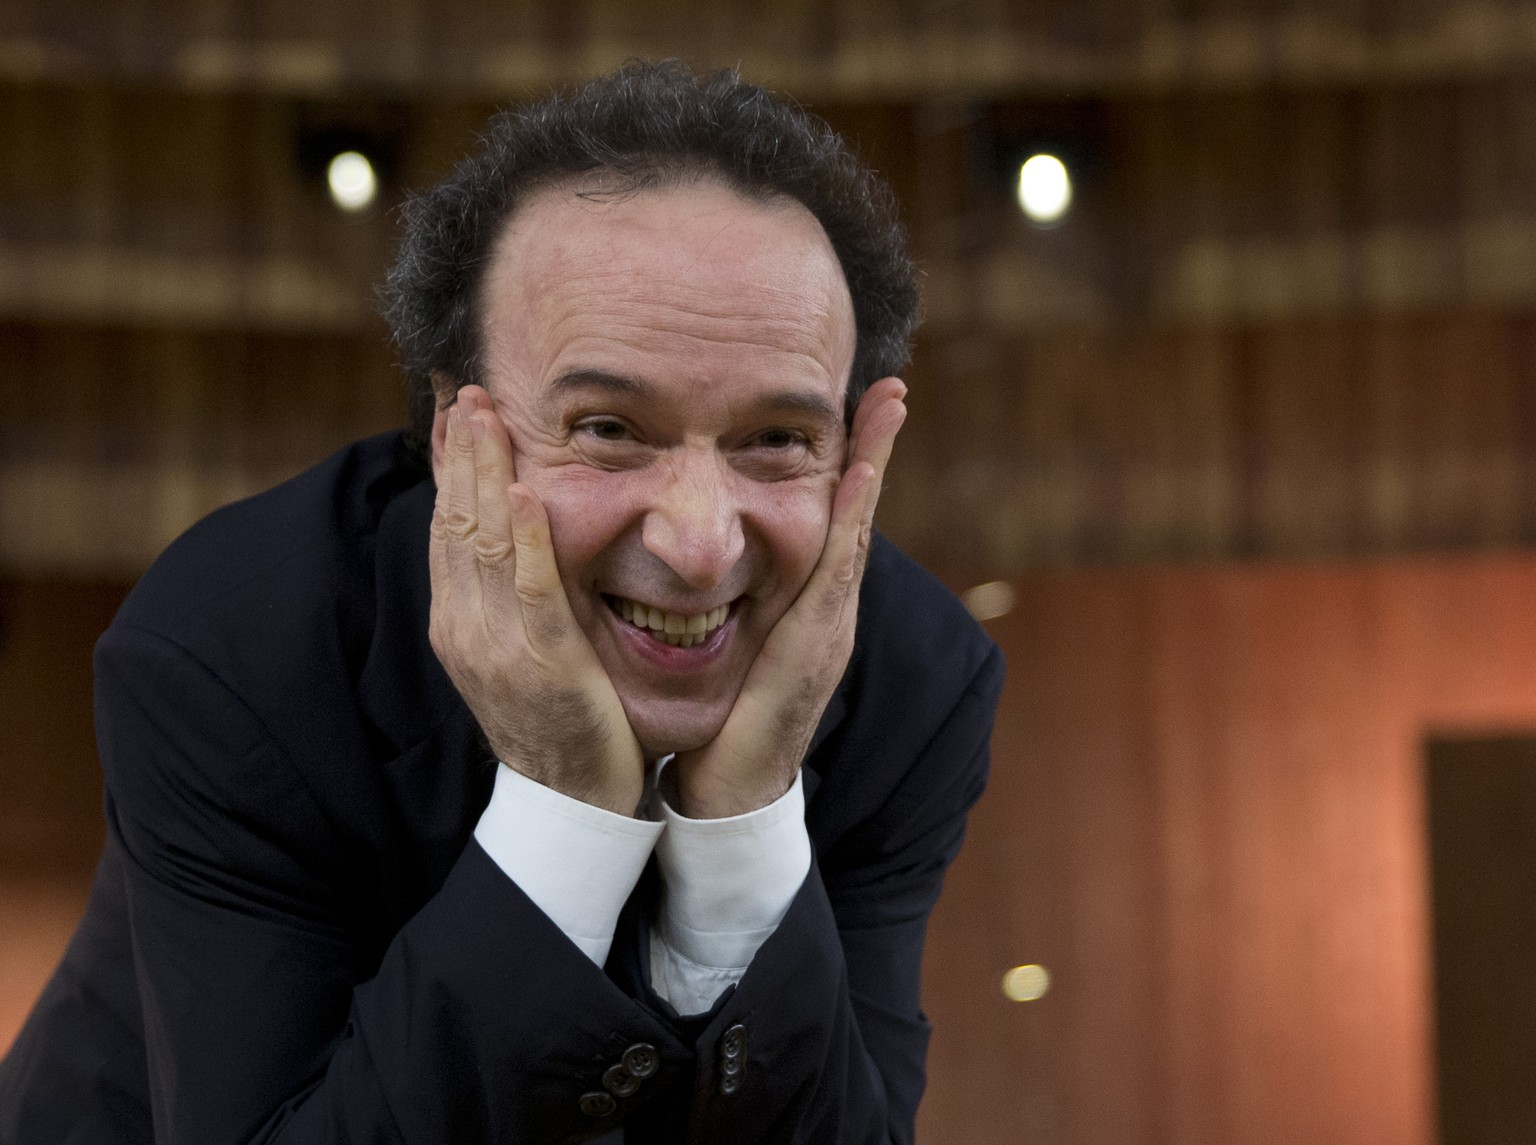 Italian actor Roberto Benigni smiles as he poses for photographers before the rehearsal of his show